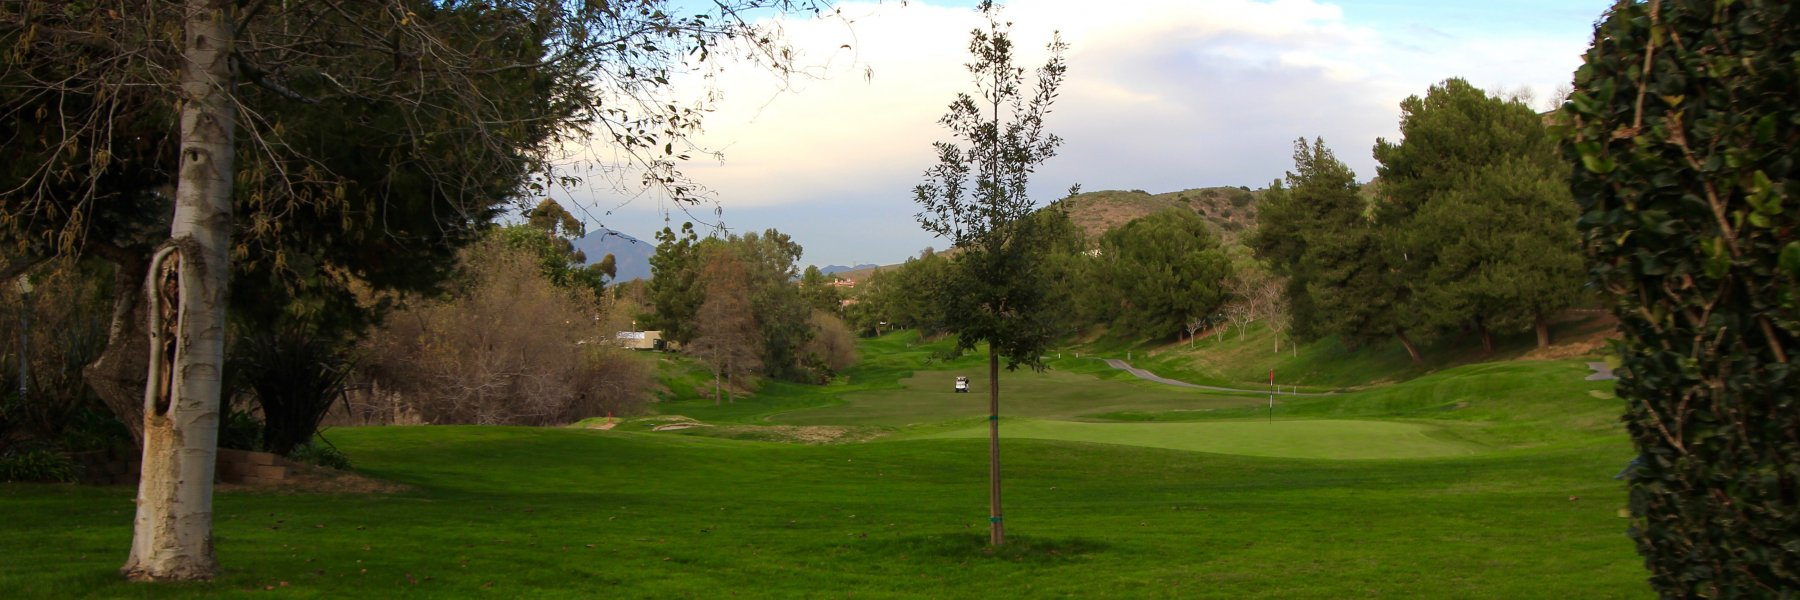 Marbella is a community of homes and condos in San Juan Capistrano Ca